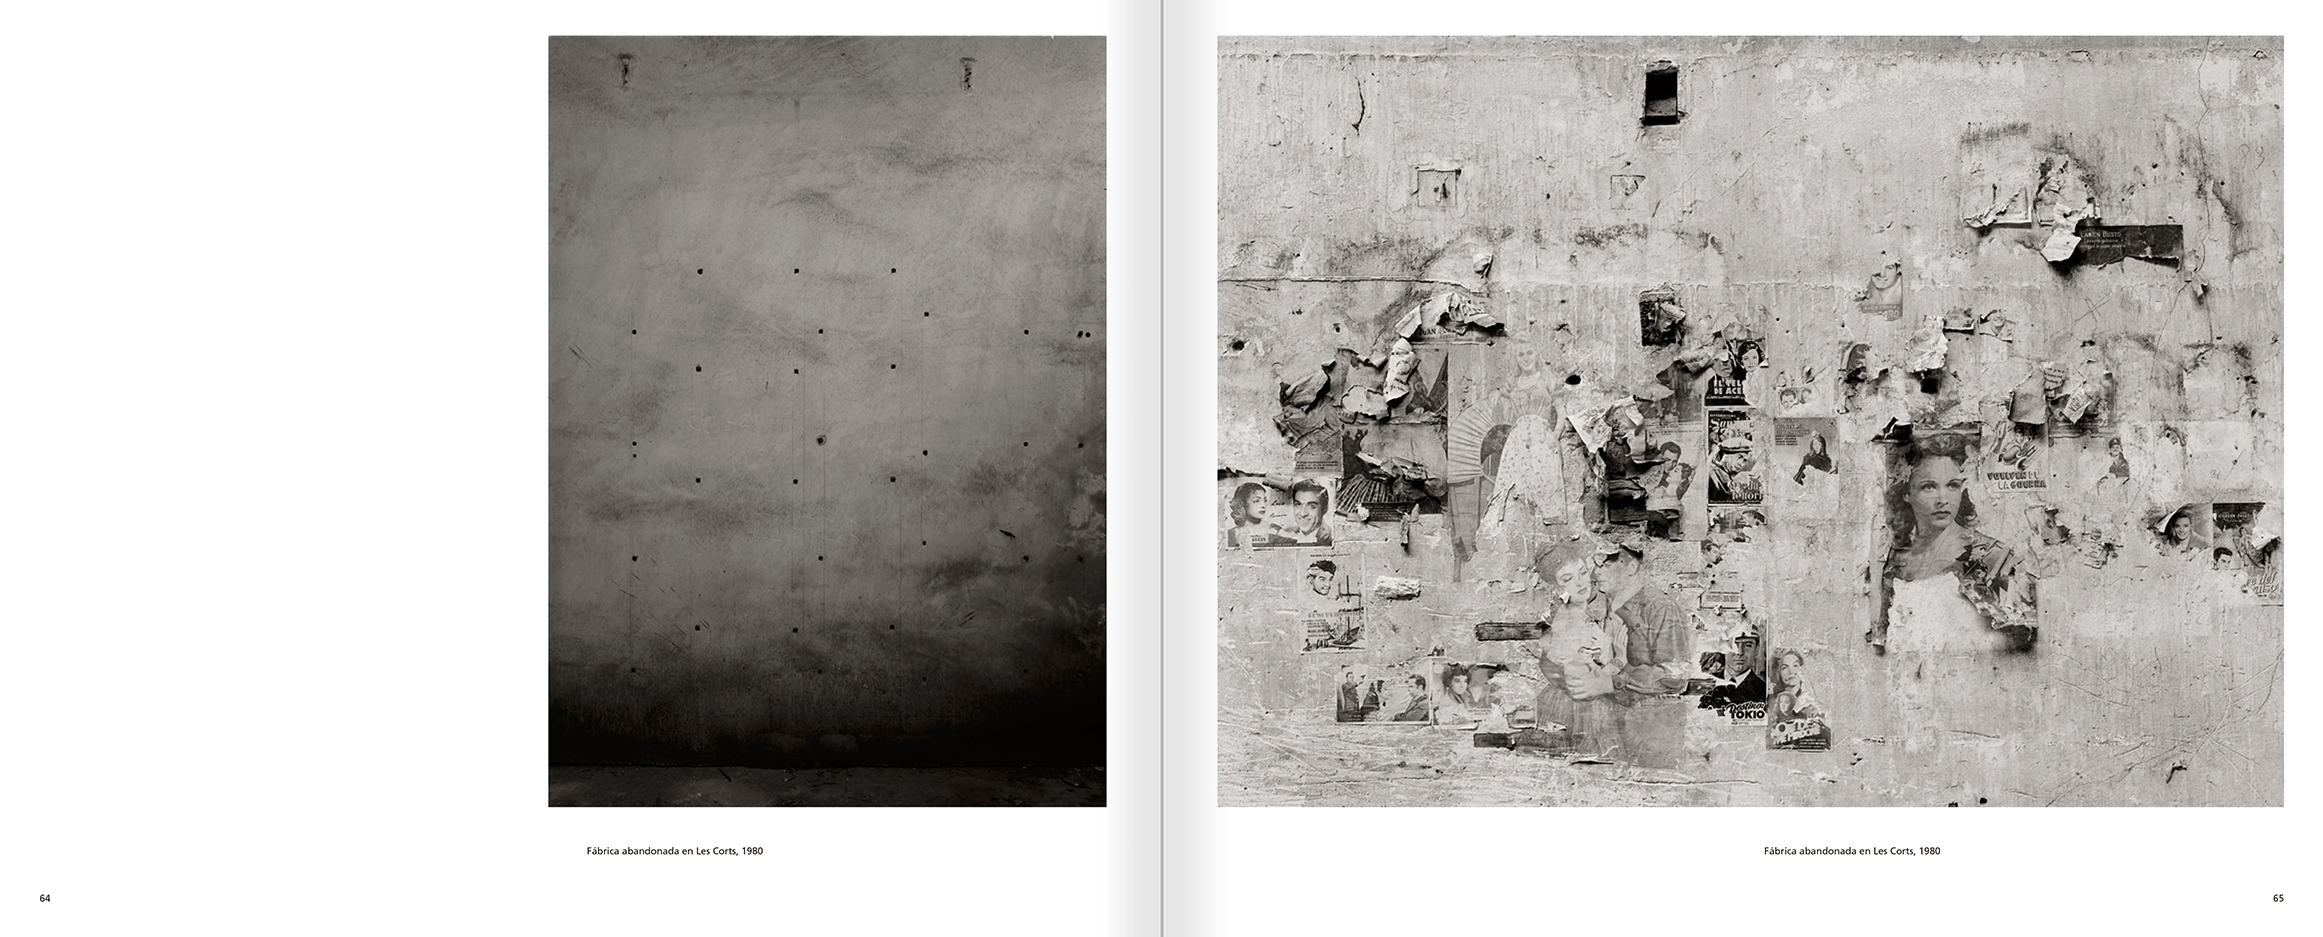 Selection from the catalogue 'Barcelona 1978-1997. Manolo Laguillo', pages 64 and 65